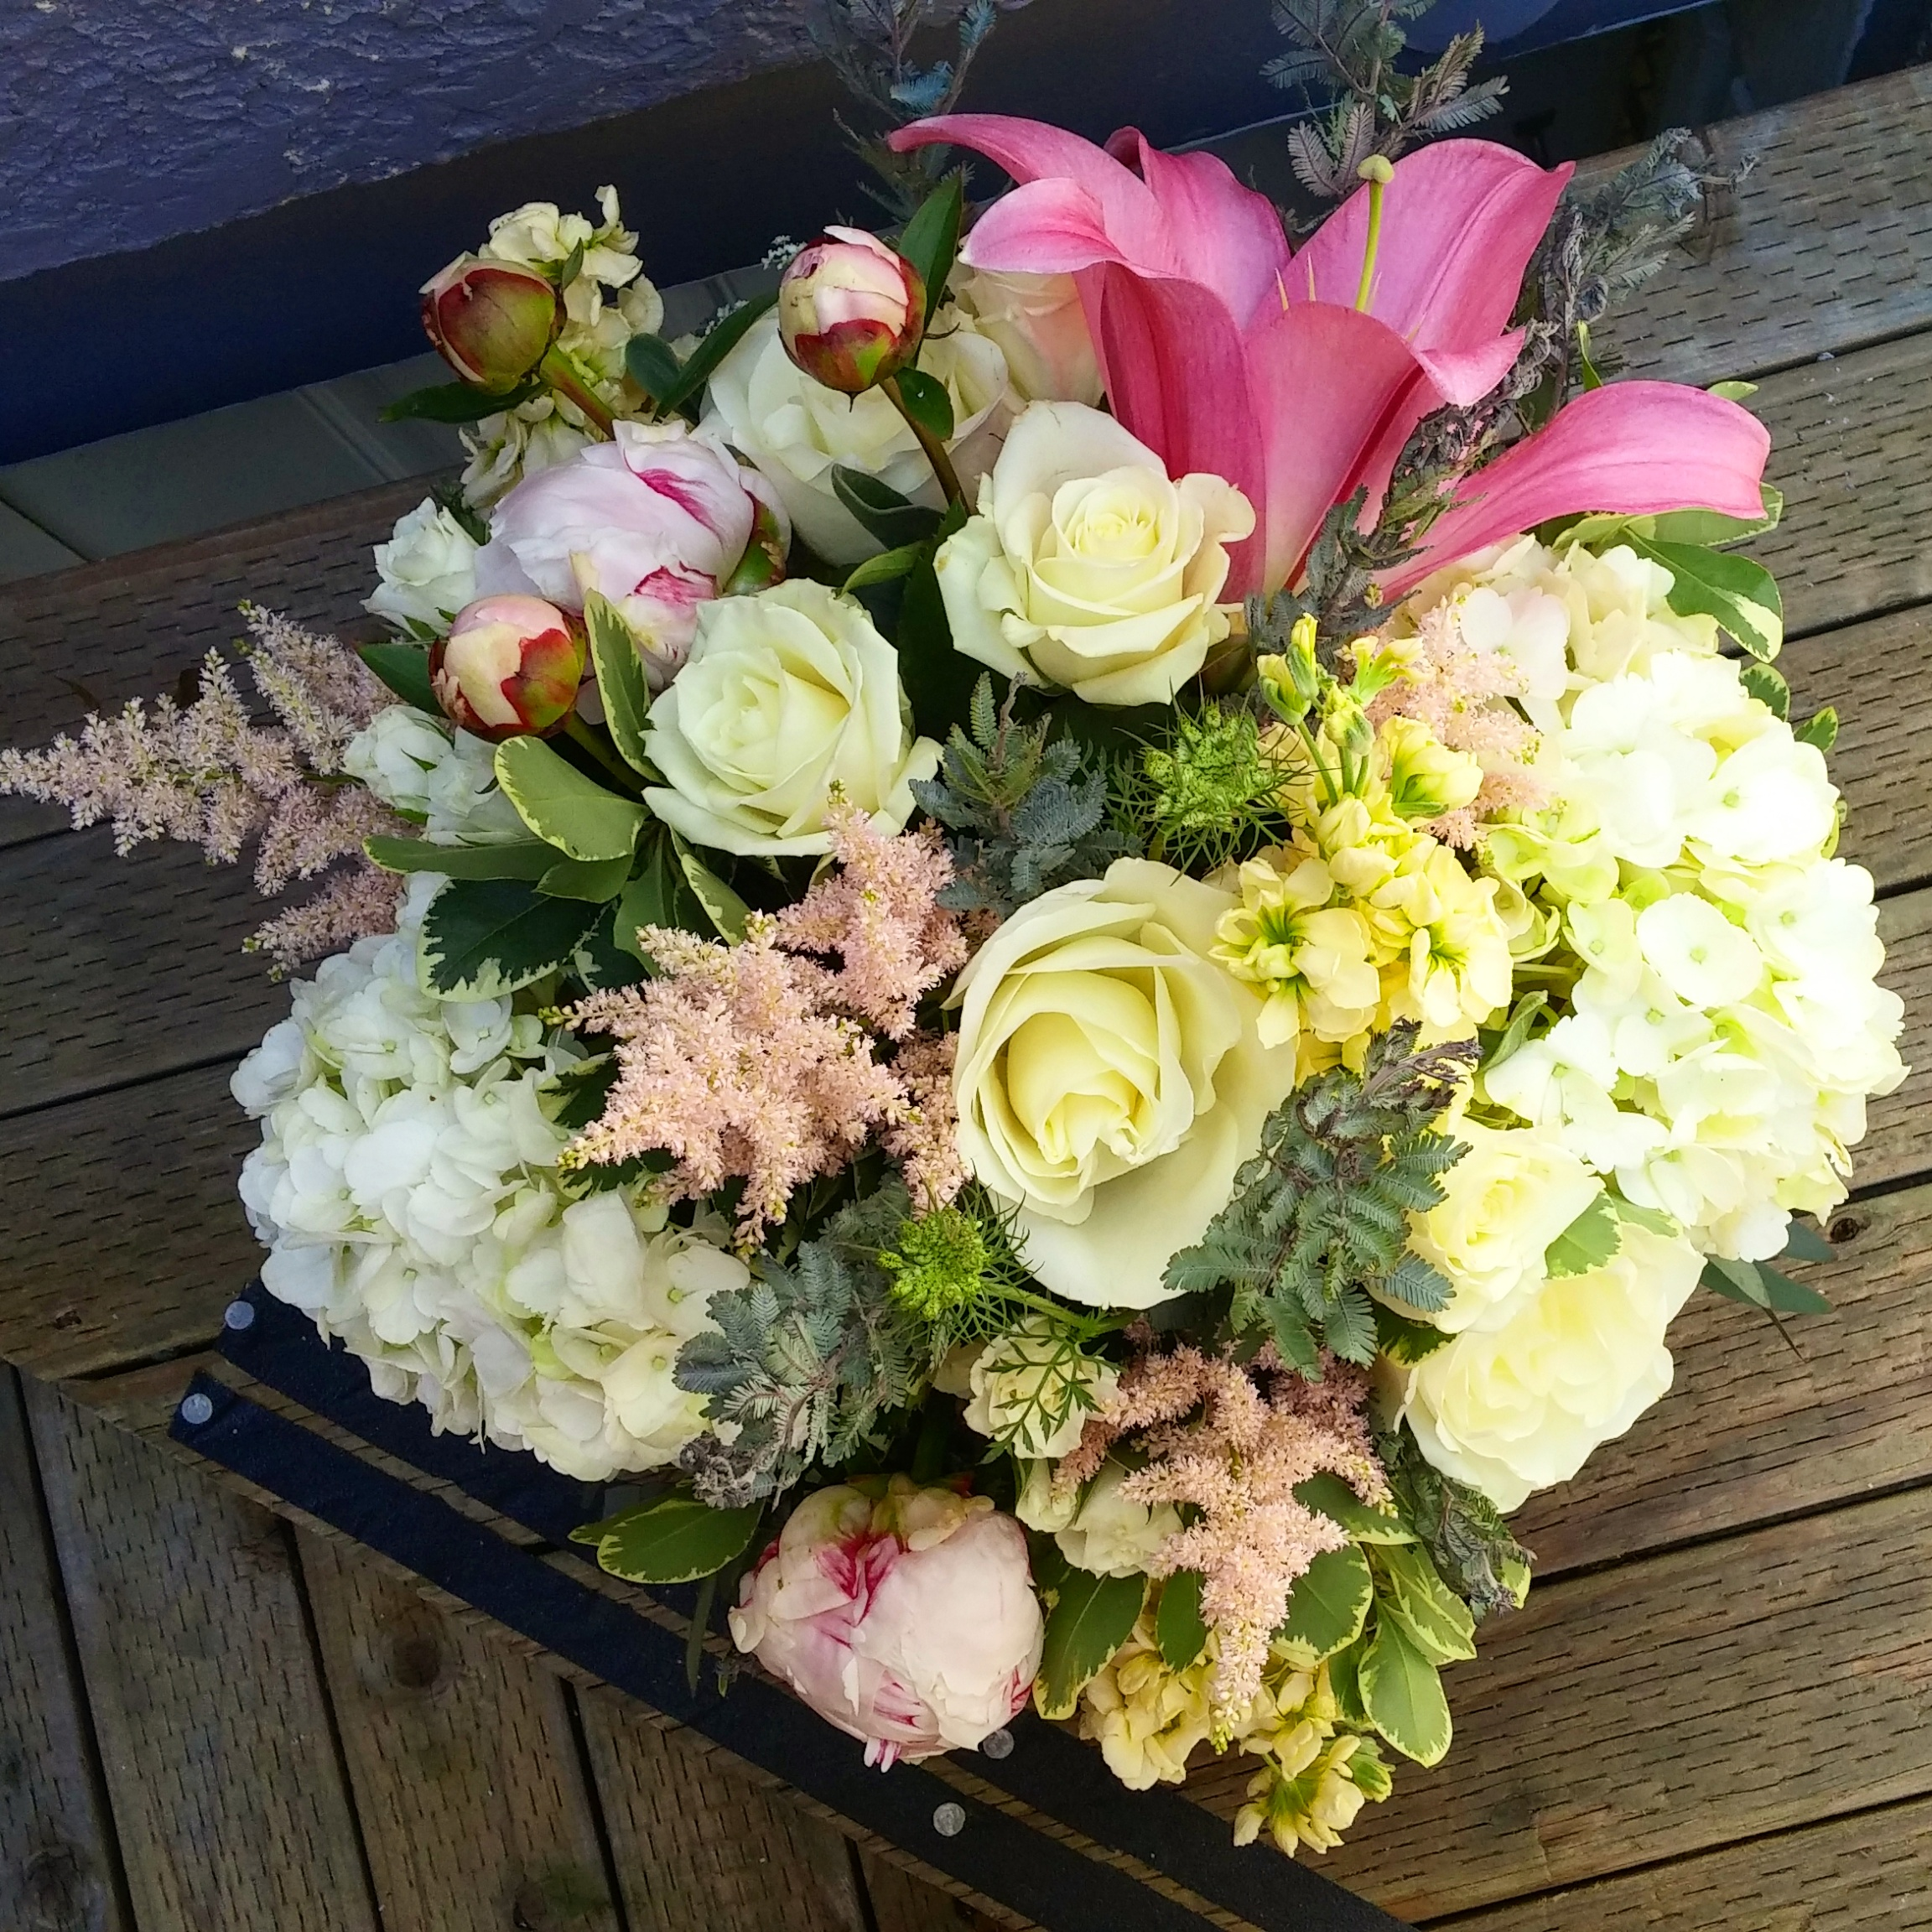 Soft Pastel Spring with Peonies